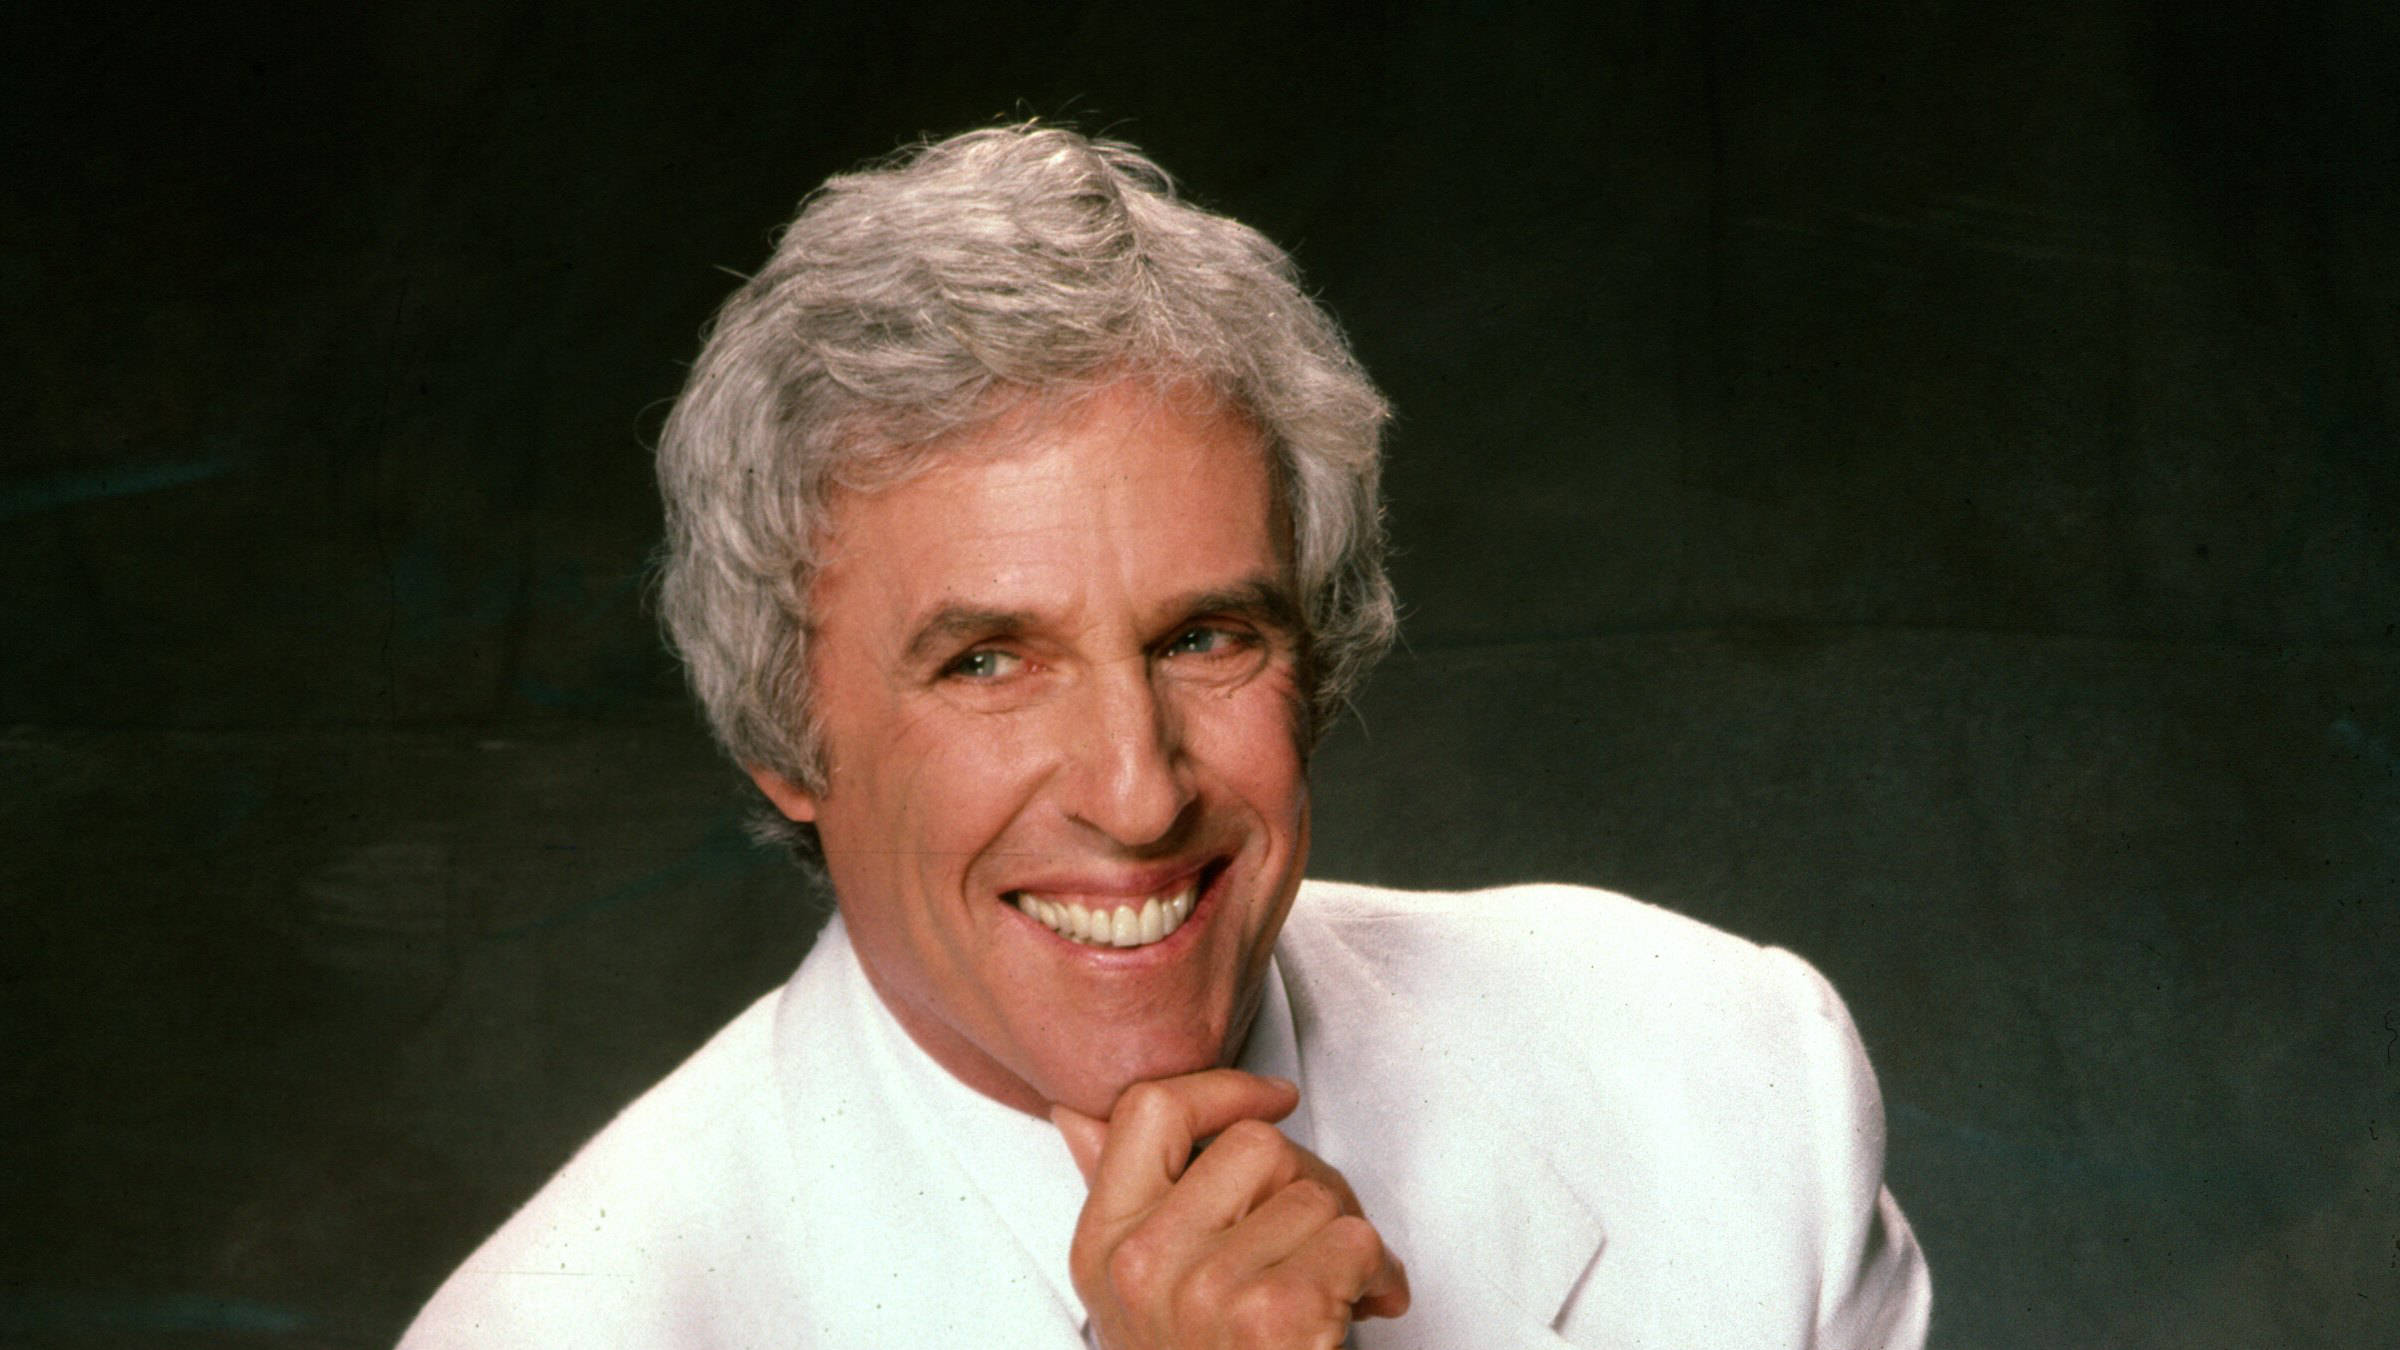 Burt Bacharach songs: The 12 greatest by the prolific songwriter ...